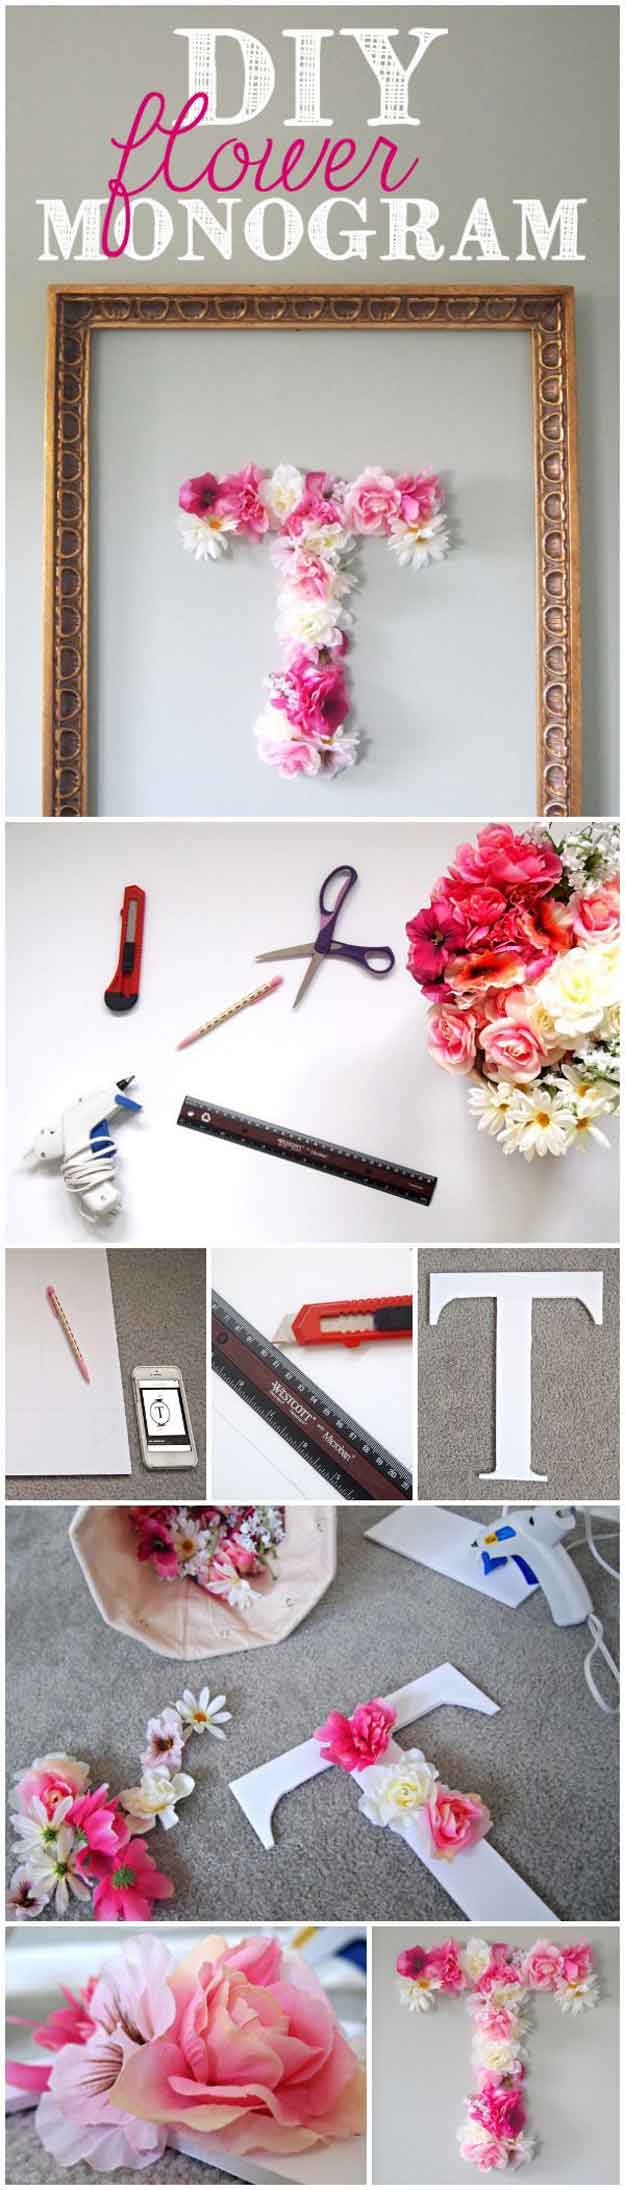 Bedroom wall decor ideas diy - Cute Diy Room Decor Ideas For Teens Diy Bedroom Projects For Teenagers Diy Flower